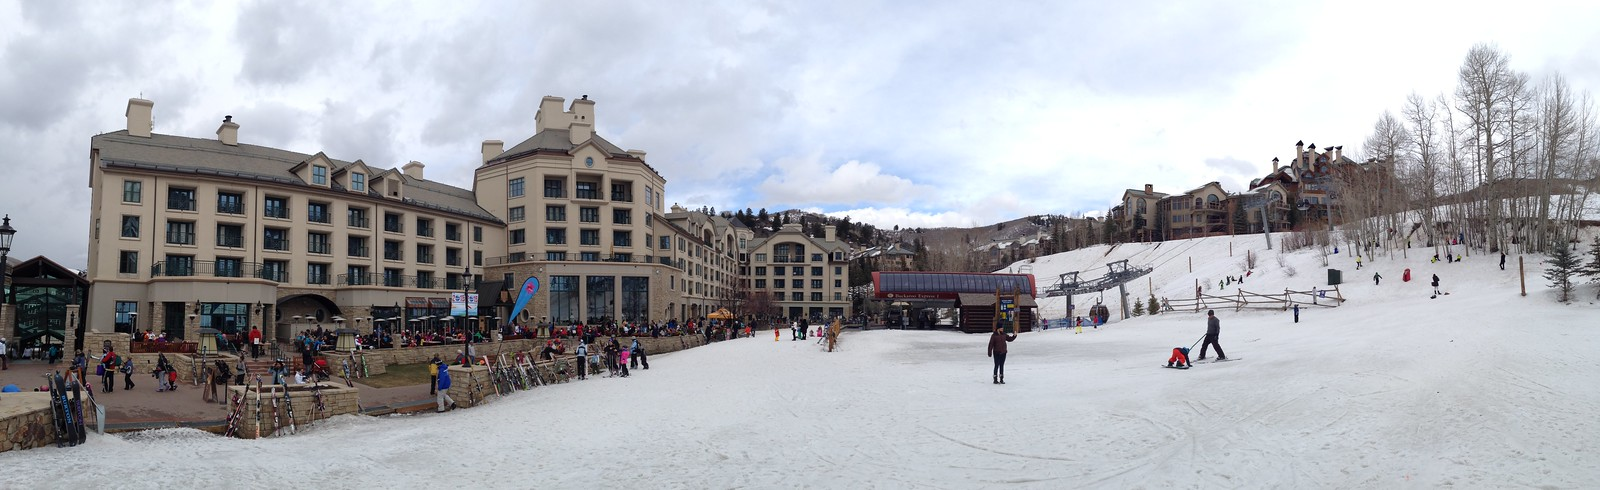 Panorama of Park Hyatt Beaver Creek